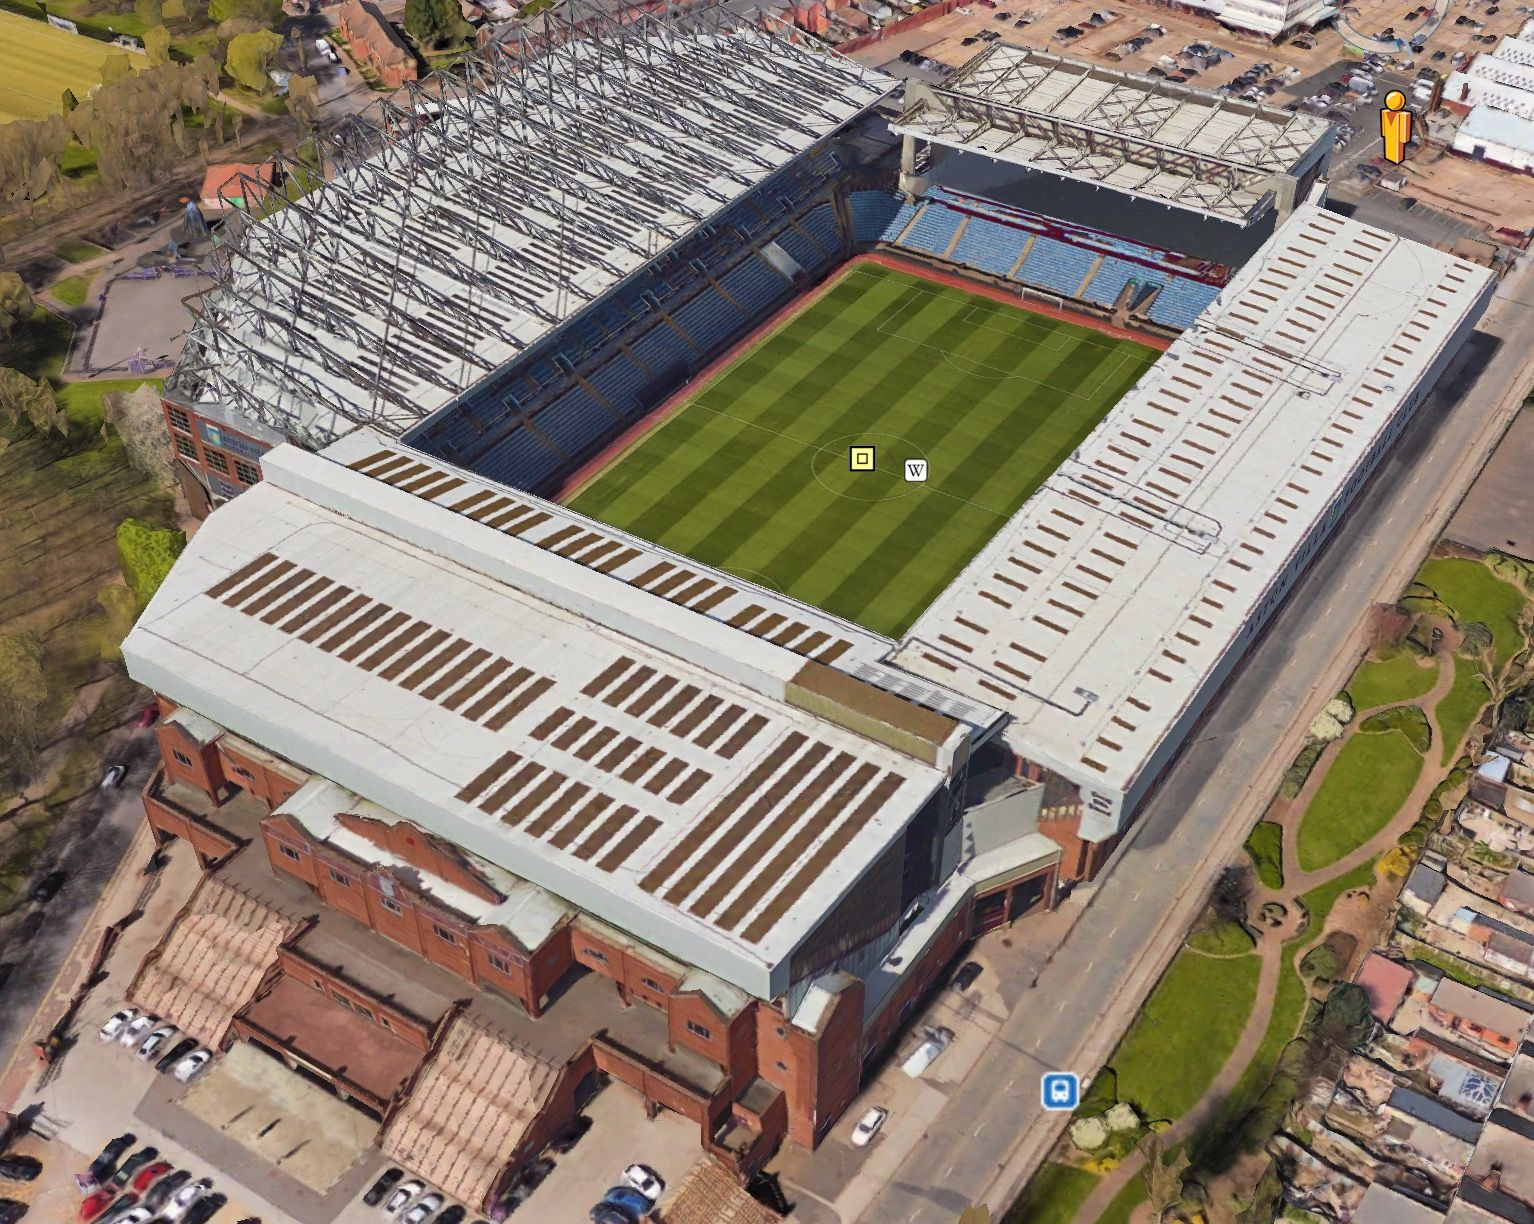 Pin on Stadiums in the UK using Google Earth